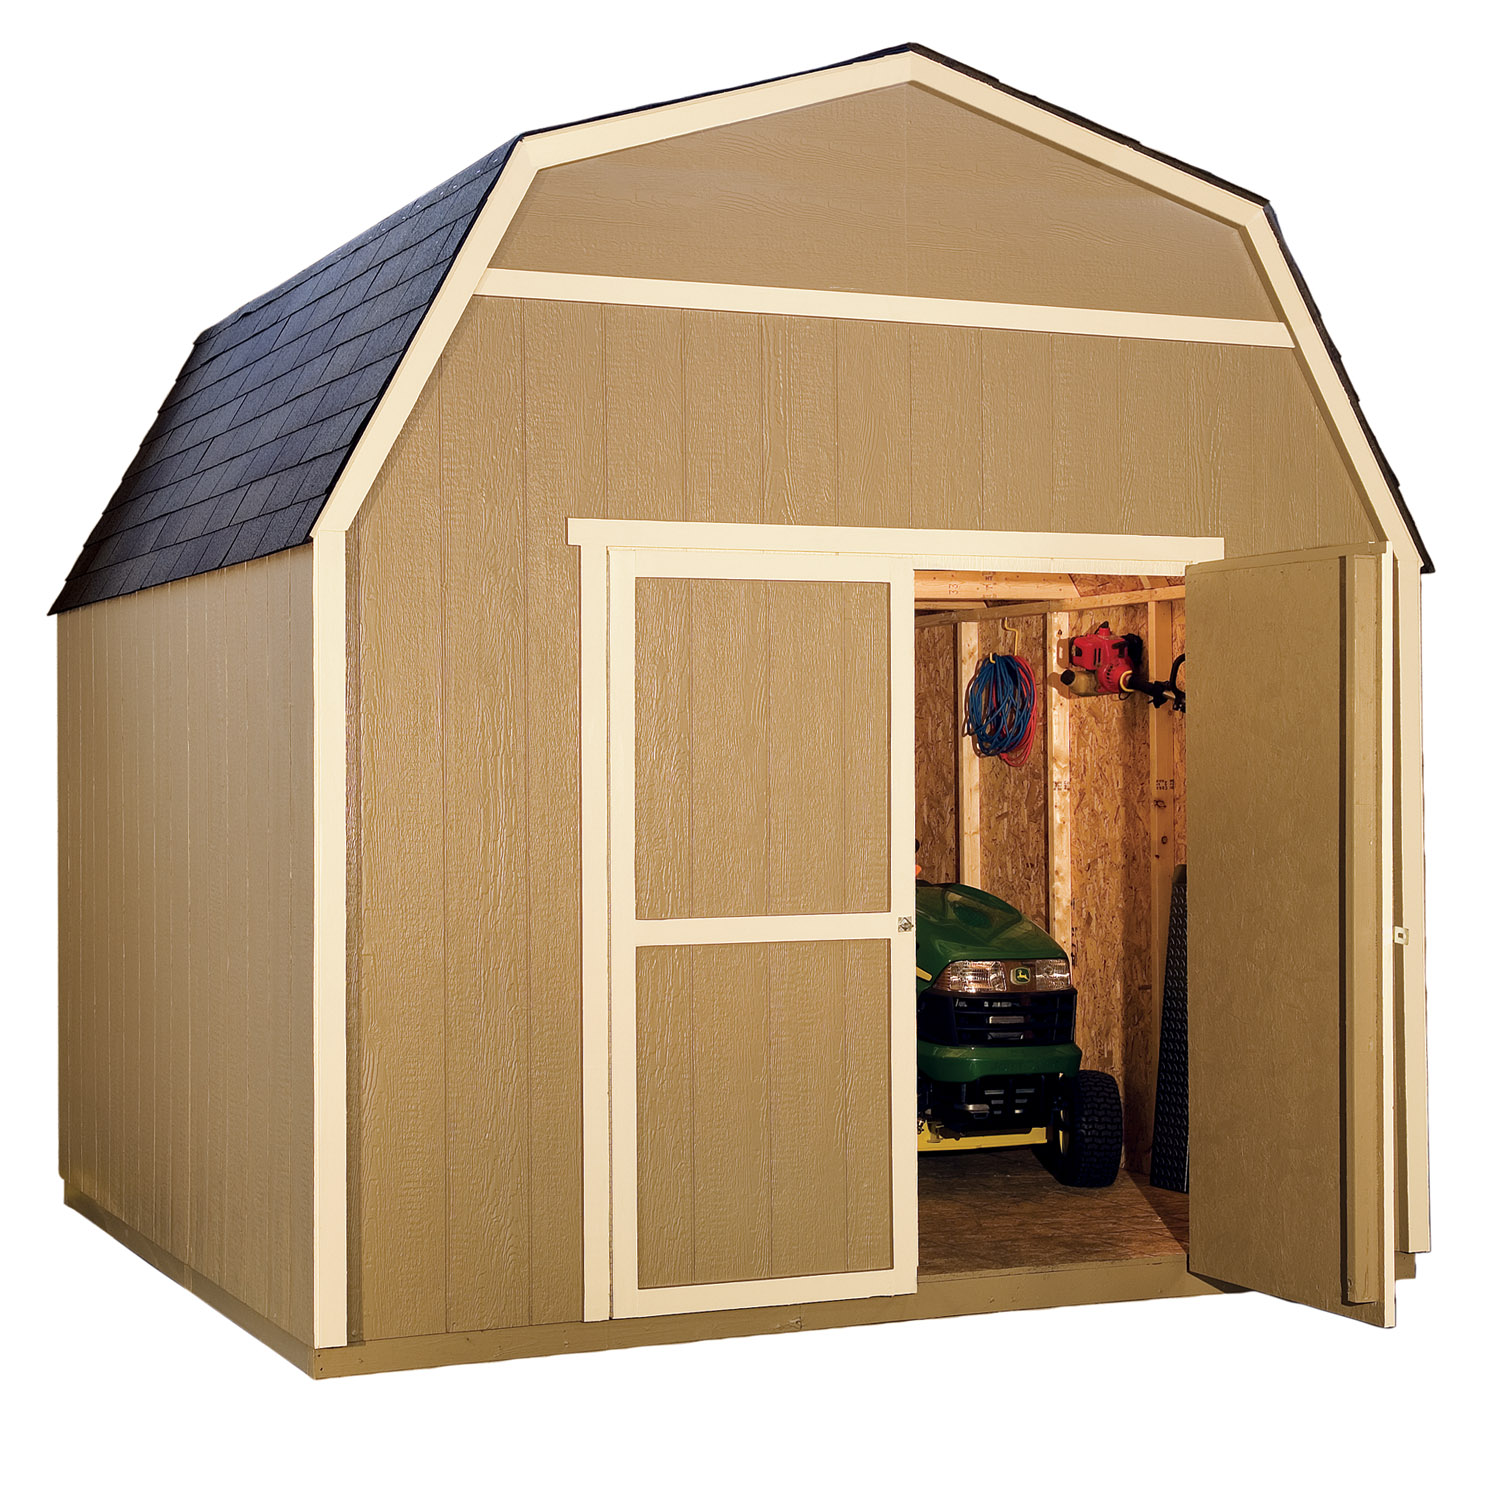 Shed doors lowes storage cabinets lowes lowes barns for 10x10 garage door lowes